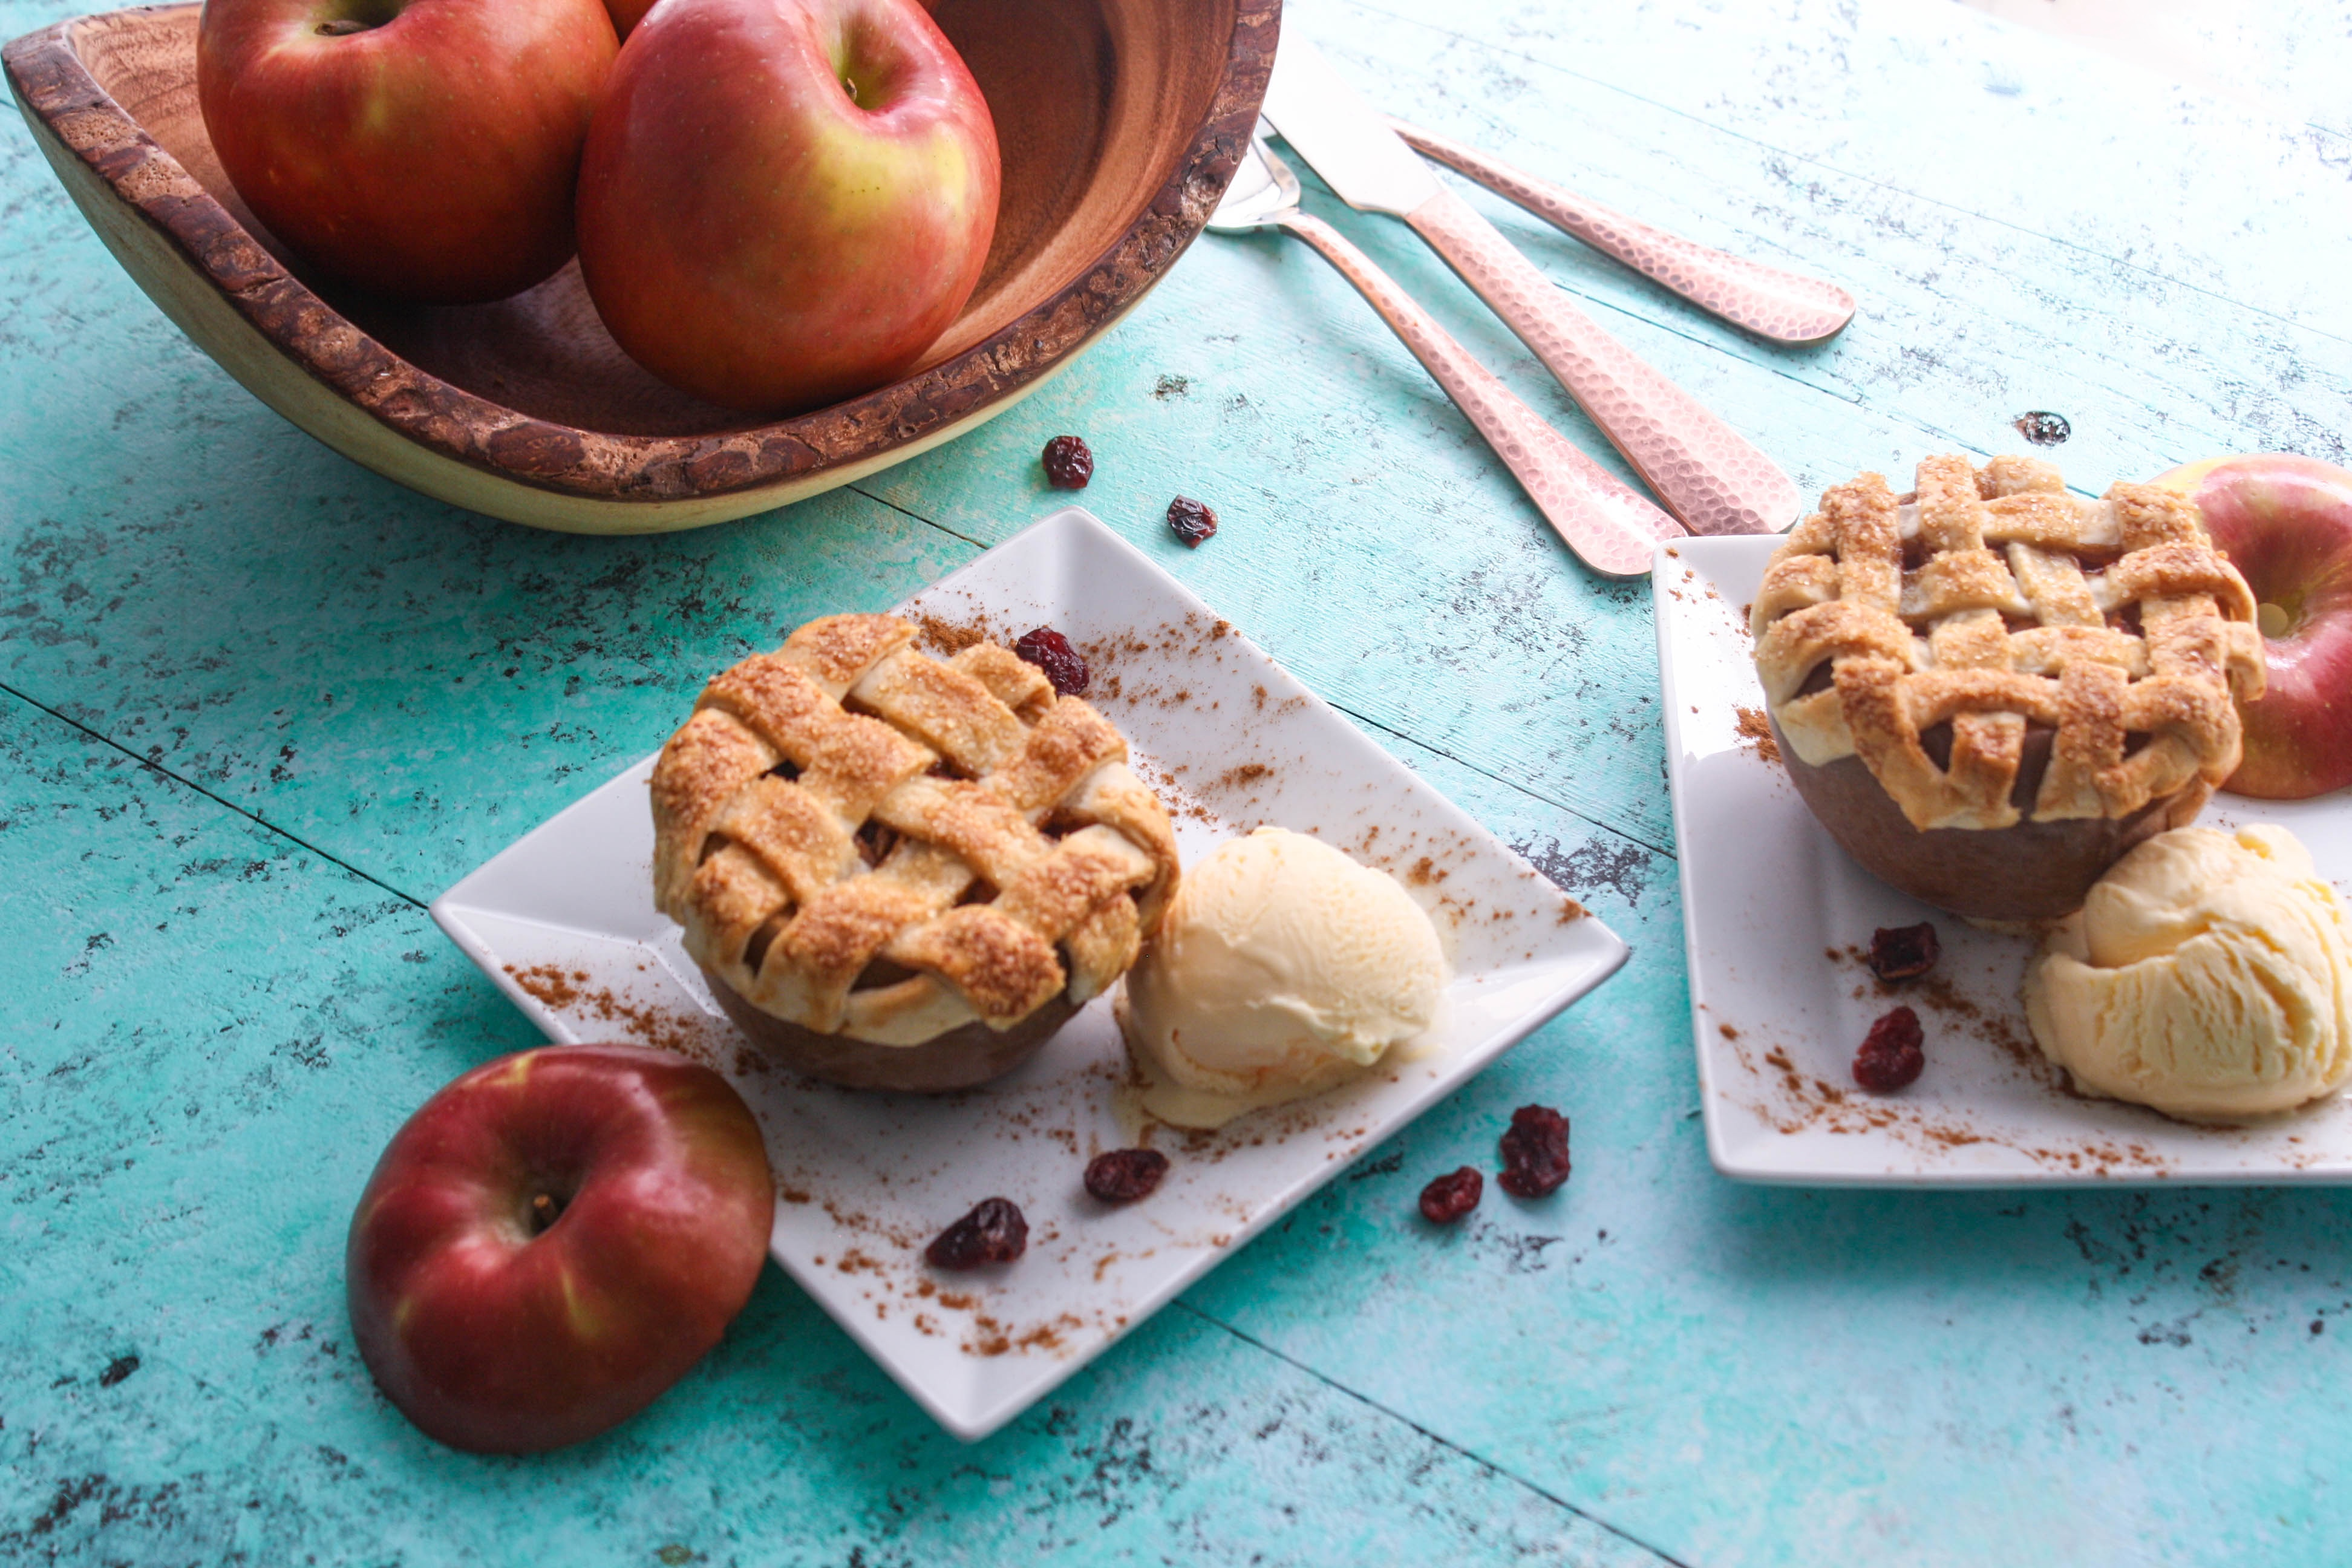 Apple-Cranberry Pie Baked Apples will be a hit for dessert! These baked apples are like apple pie, but much easier to put together.